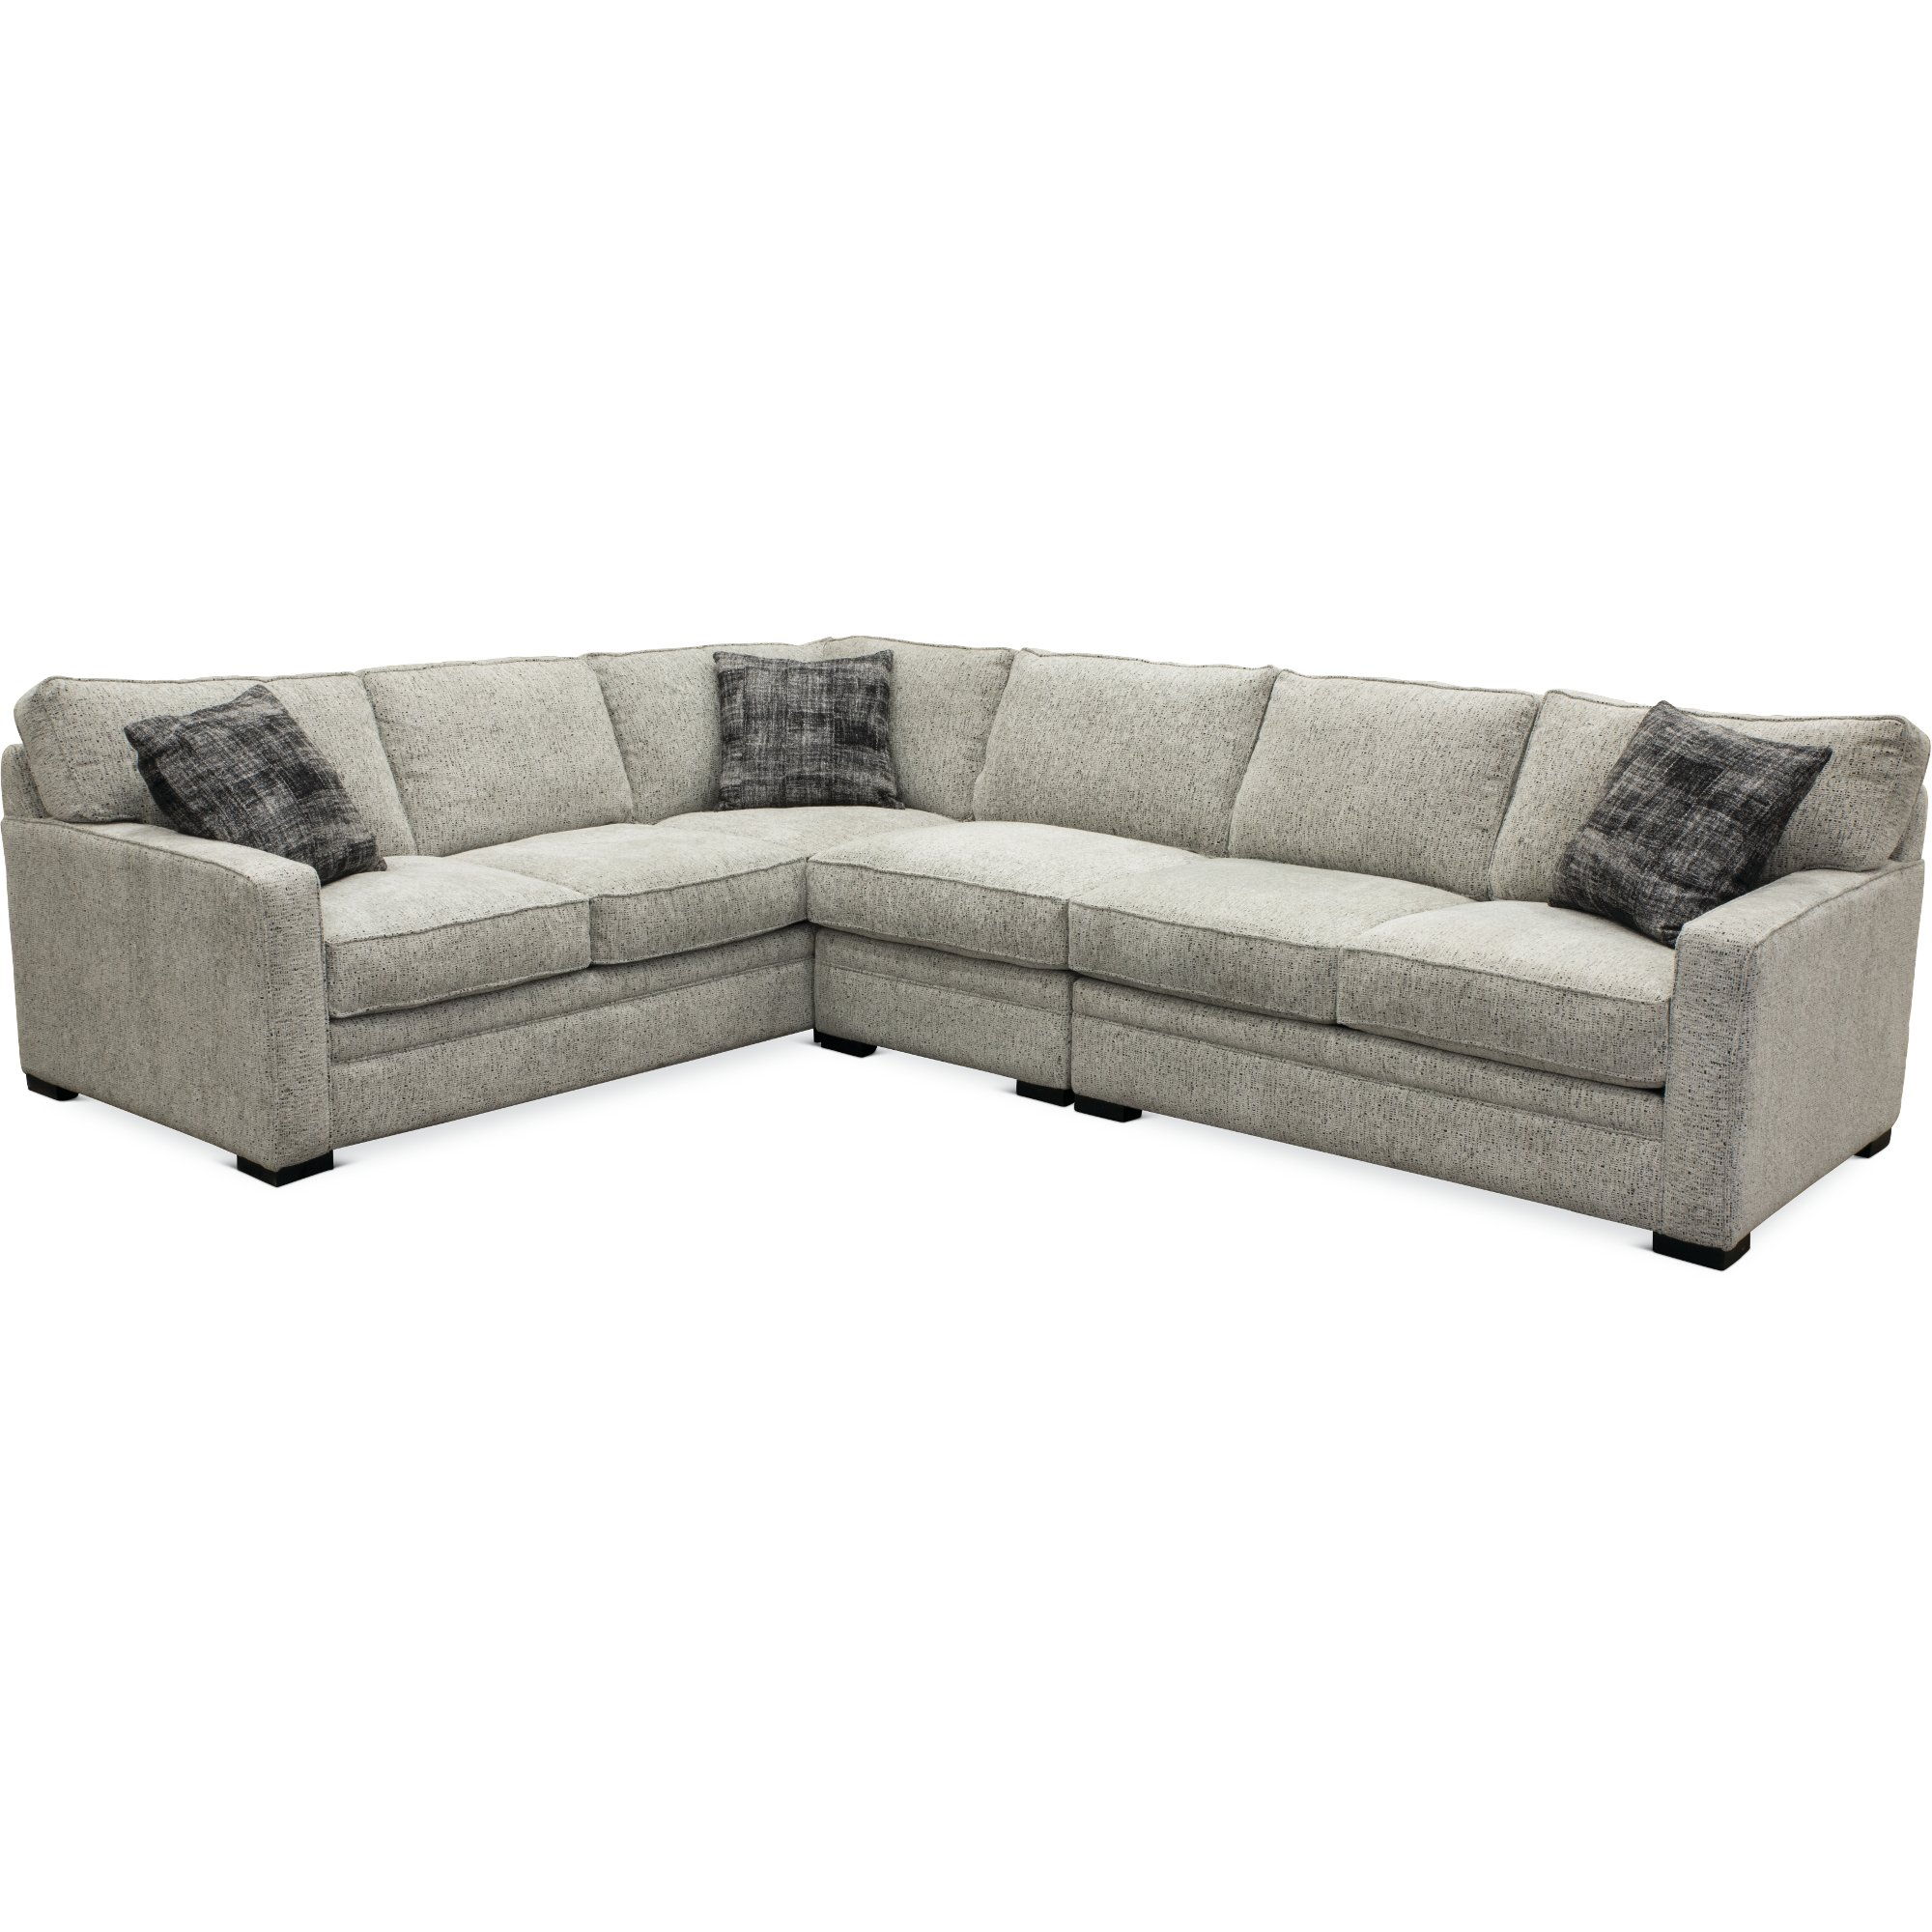 blue fabric awesome sofa ideas sectional reclining rc of com sectionals seatersofa sofas willey